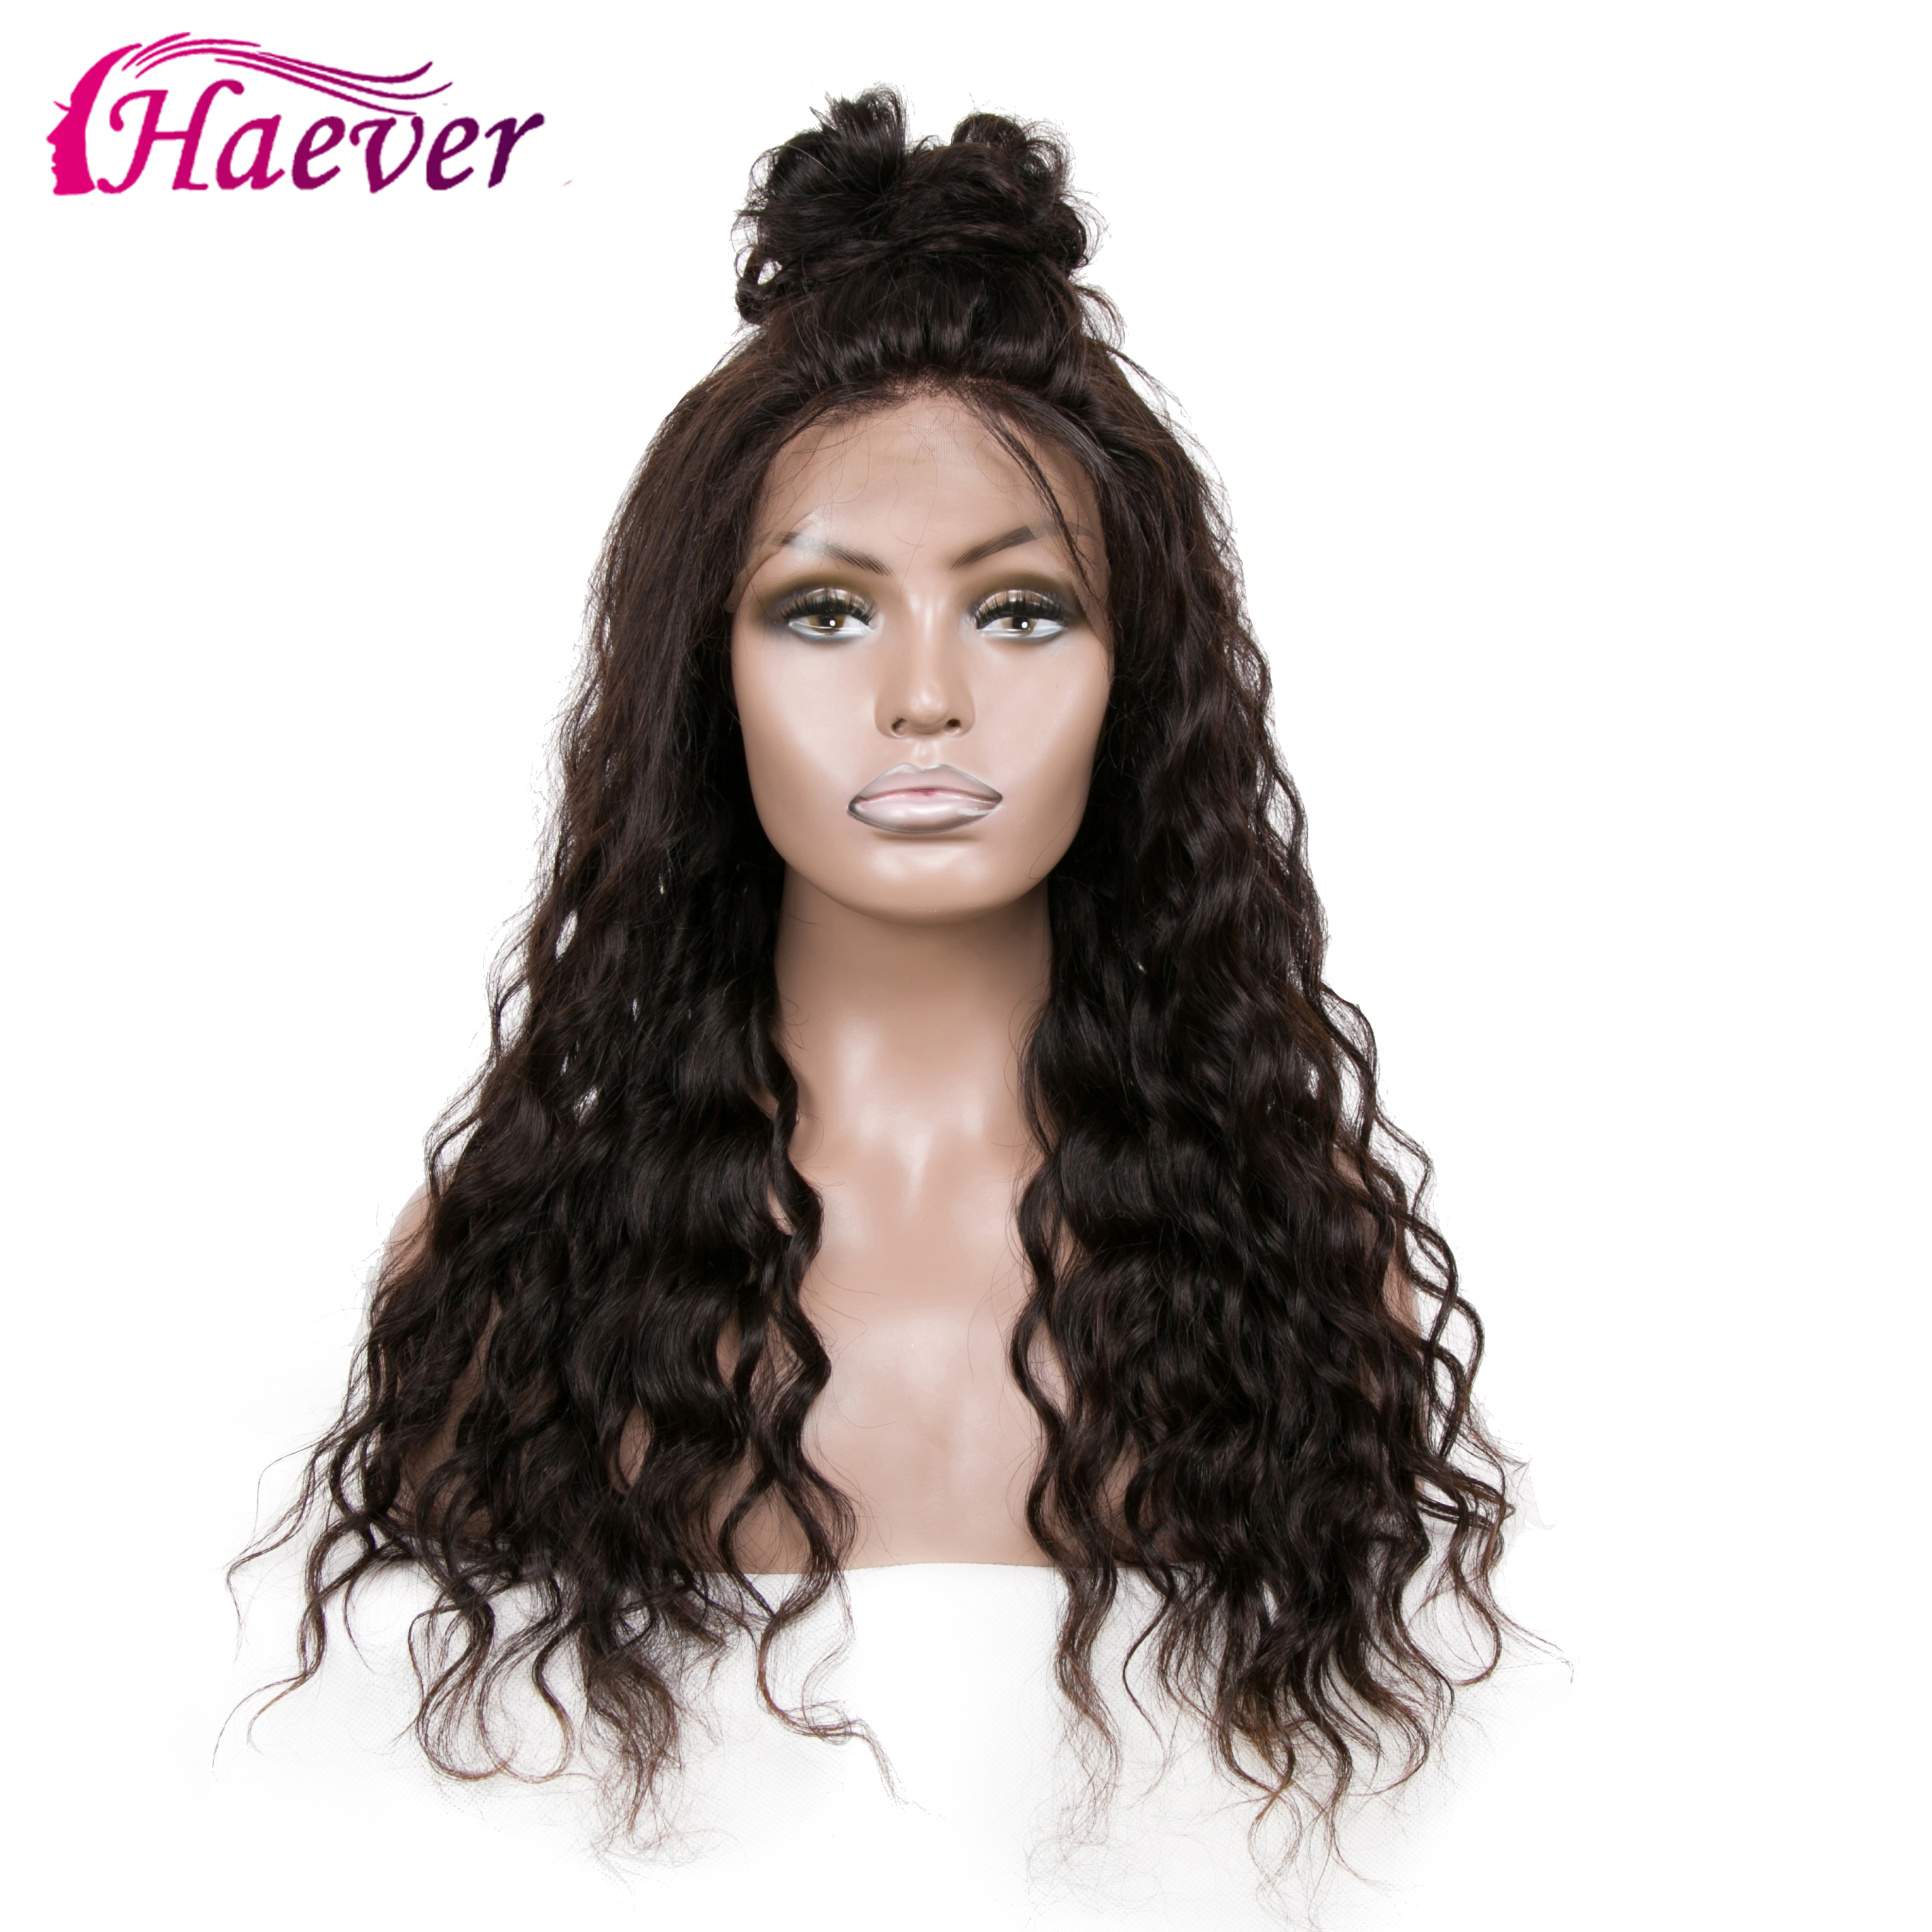 Haever 13x4 Lace Front 180% Density Human Hair Wigs Peruvian Virgin Hair Water Wave New Hair Hairline For Woman Pre Plucked